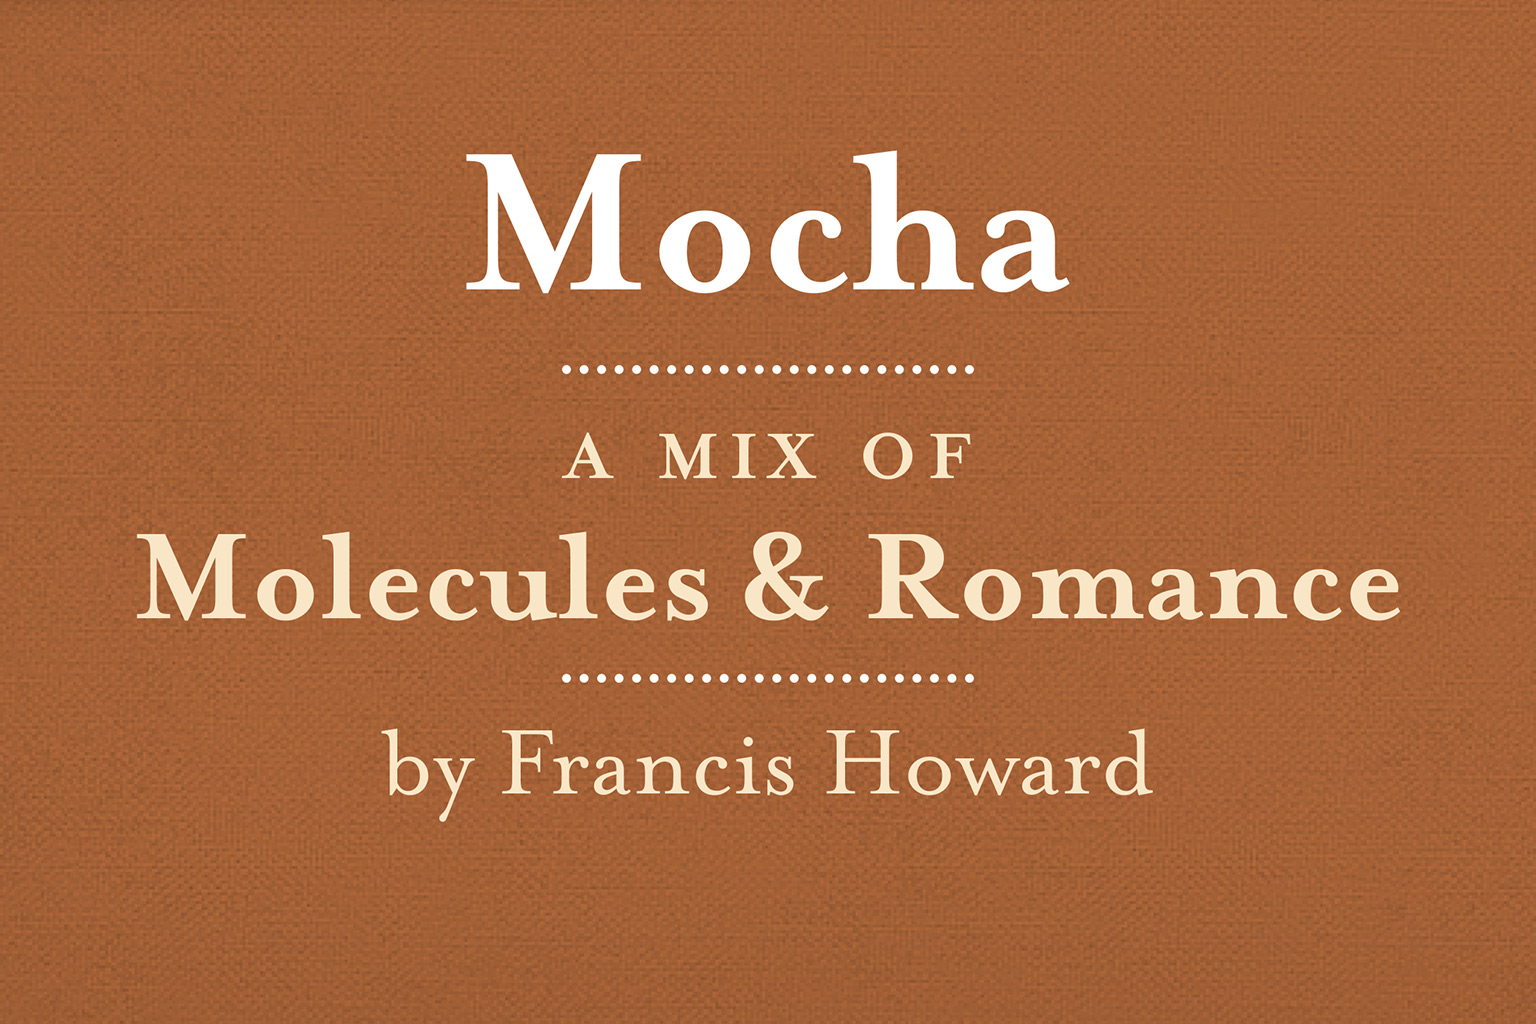 coffee magazine - mocha - romance - spicy - ibarra